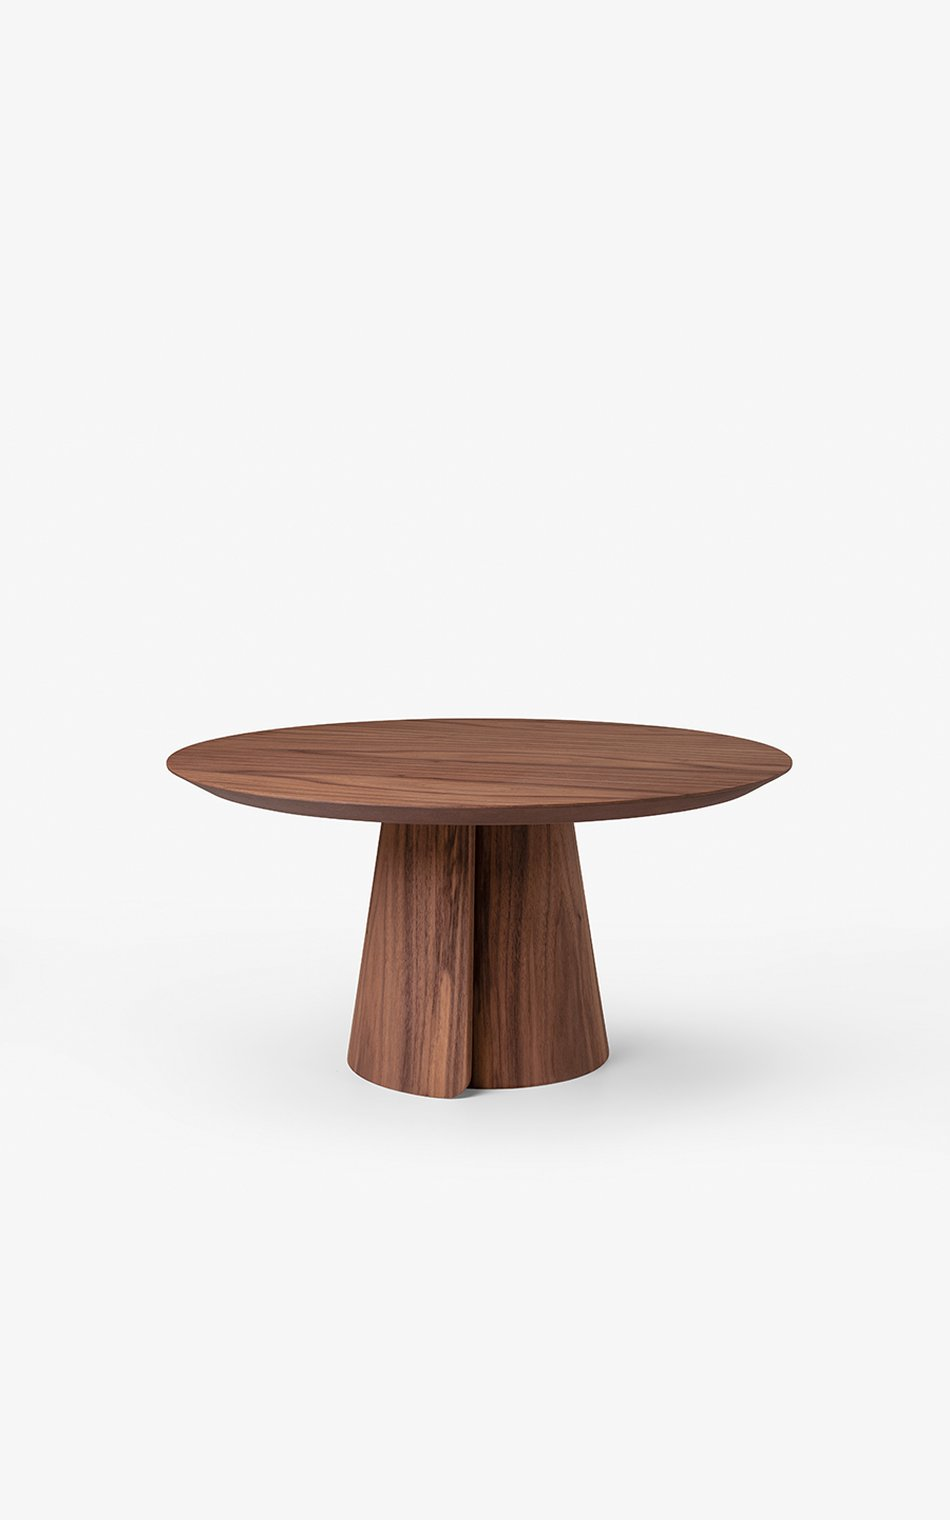 MESA CENTRO VOLTA | VOLTA COFFEE TABLE